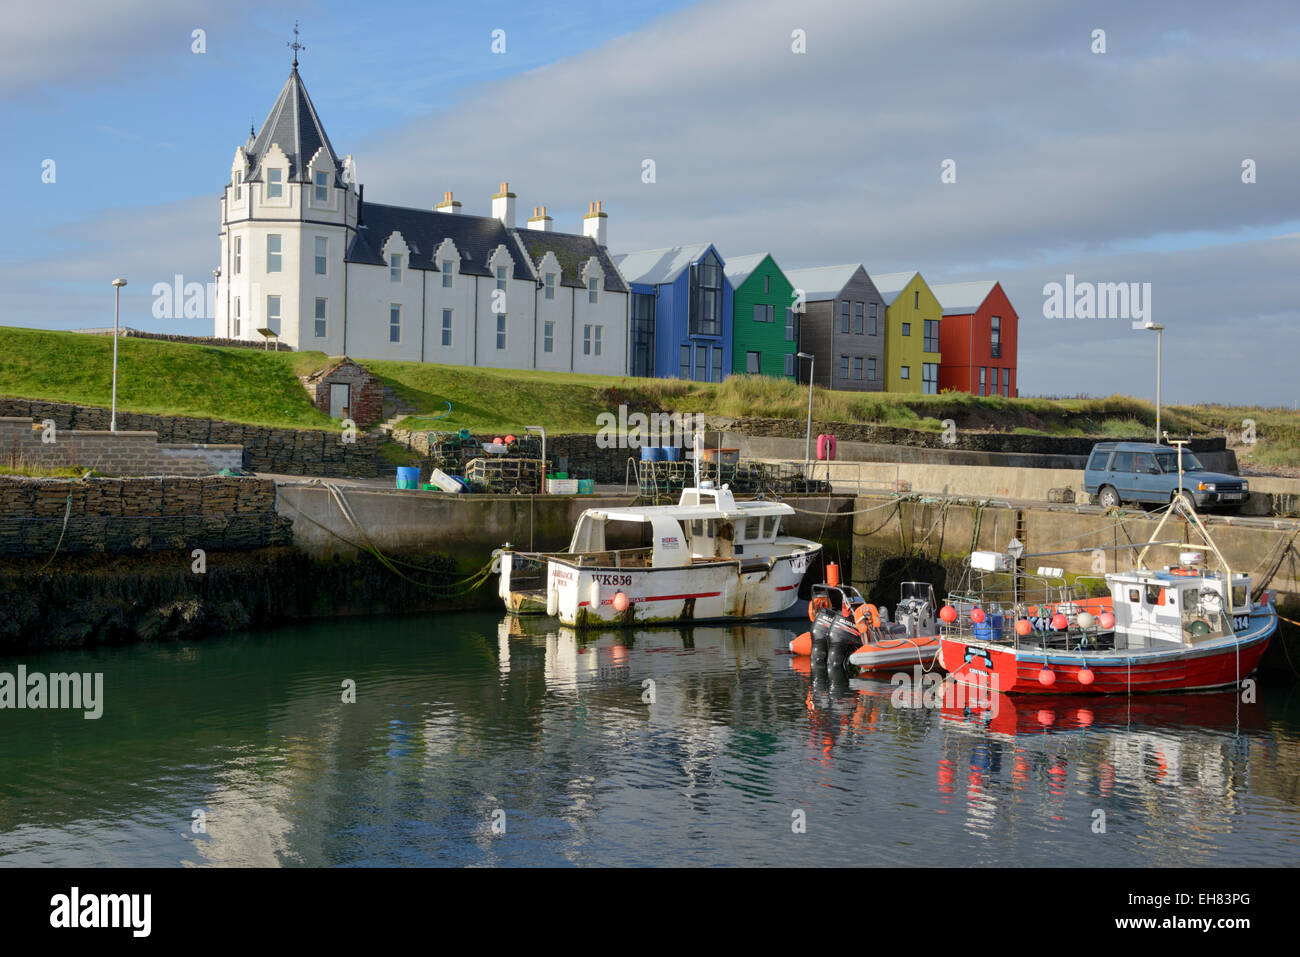 Fishing boats in the harbour, John O'Groats, Caithness, Highland Region, Scotland, United Kingdom - Stock Image